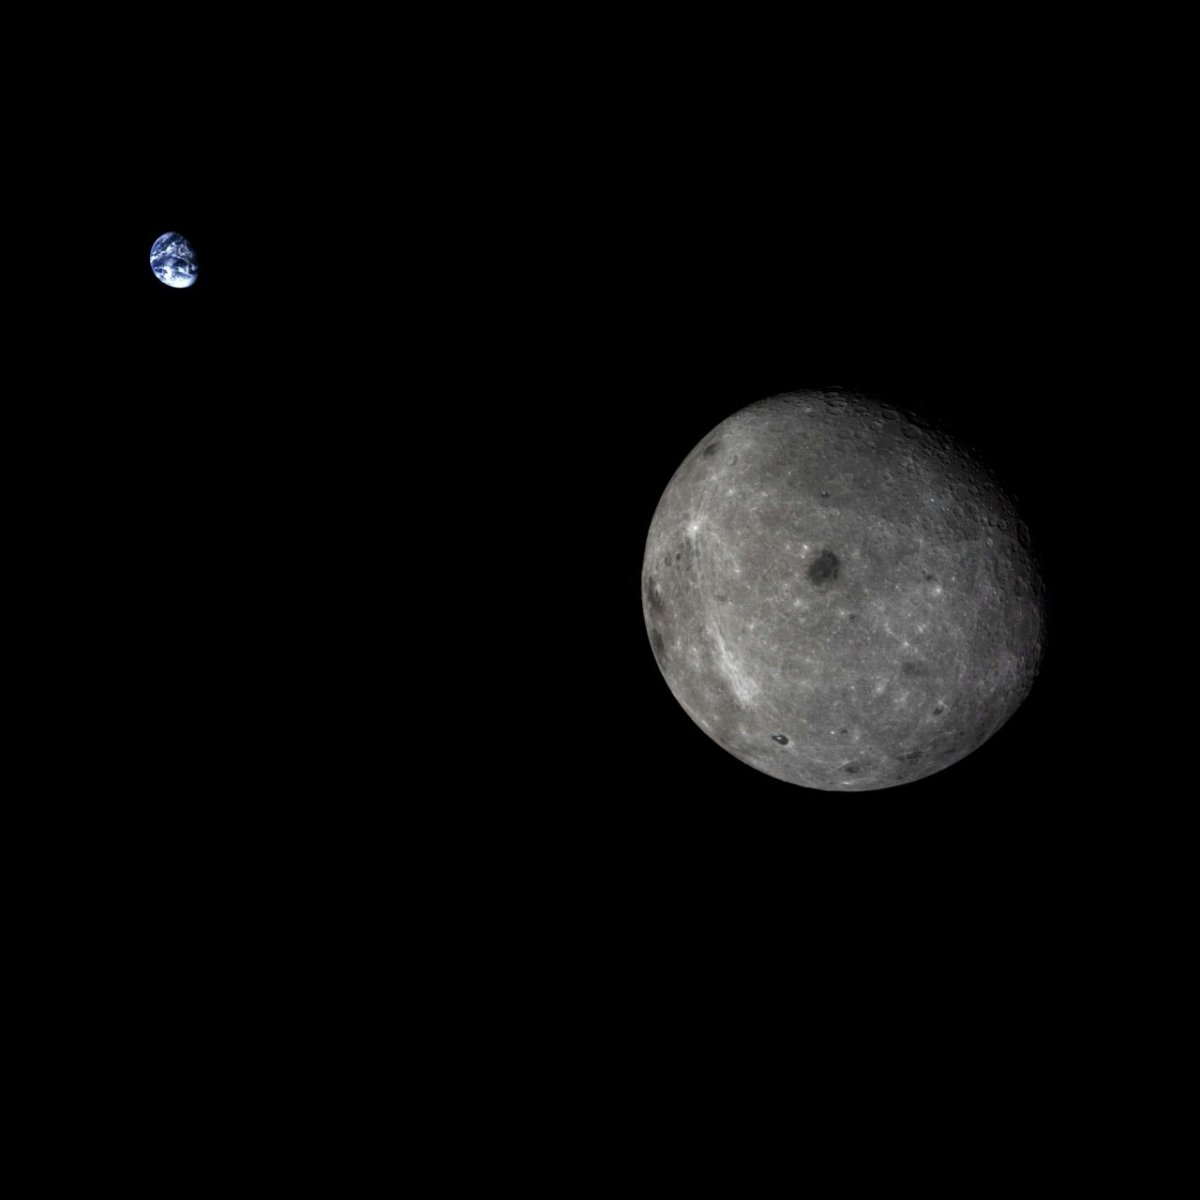 The far side of the Moon and Earth as seen by the Chang'e-5 Test mission service module (SASTIND).